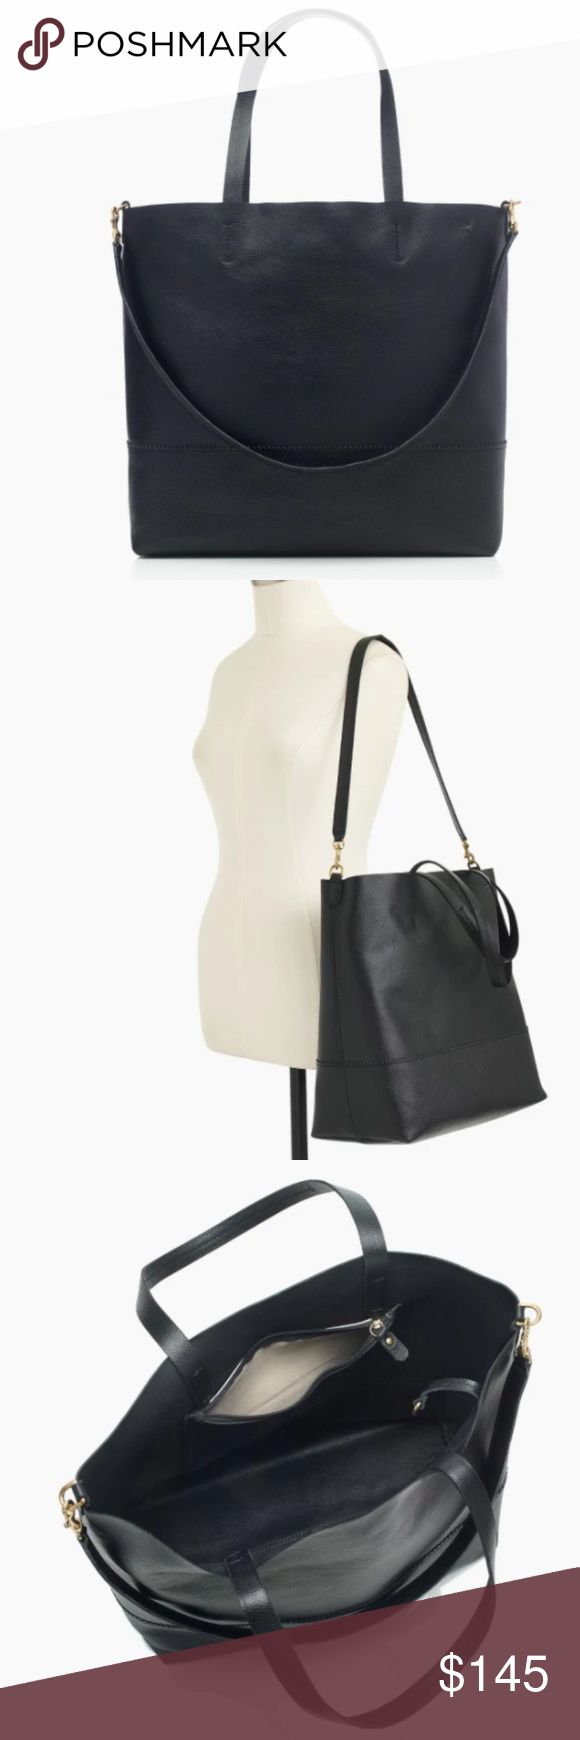 """J. Crew Large Black Classic Leather Tote J. Crew Leather Tote (Item G9608)  This roomy-but-polished tote proves your work bag, errands bag, gym bag and going-out bag can all be the same bag.  Leather. 13 1/2"""" H x 13 1/2""""W x 6 1/4"""" D.  From the J. Crew retail store, not the factory store. Brand new, never used. Still in its plastic. PRICE FIRM. J. Crew Bags"""